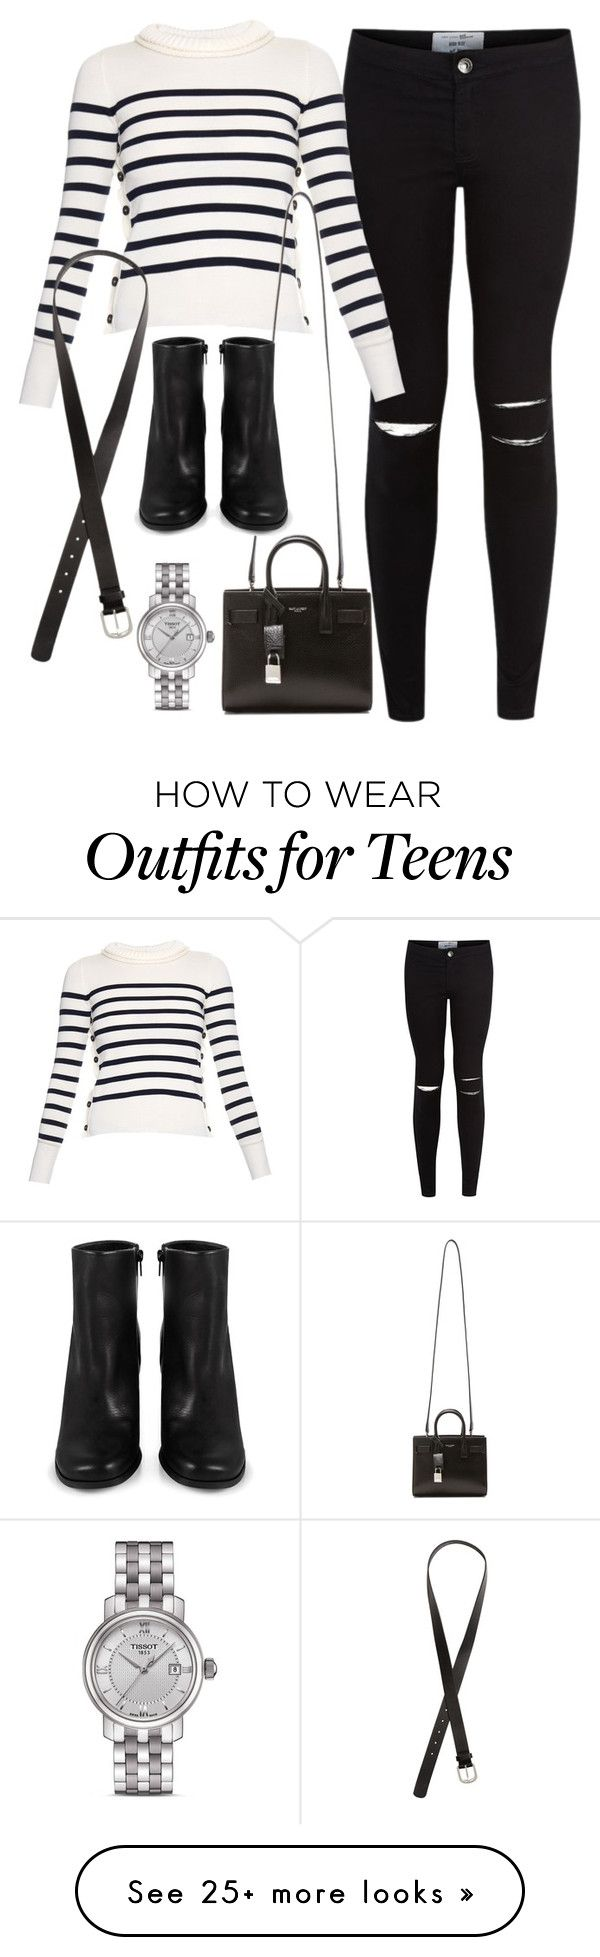 """Sans titre #2646"" by christina95styles on Polyvore featuring Alexander McQueen, Yves Saint Laurent, Miista, H&M and Tissot"